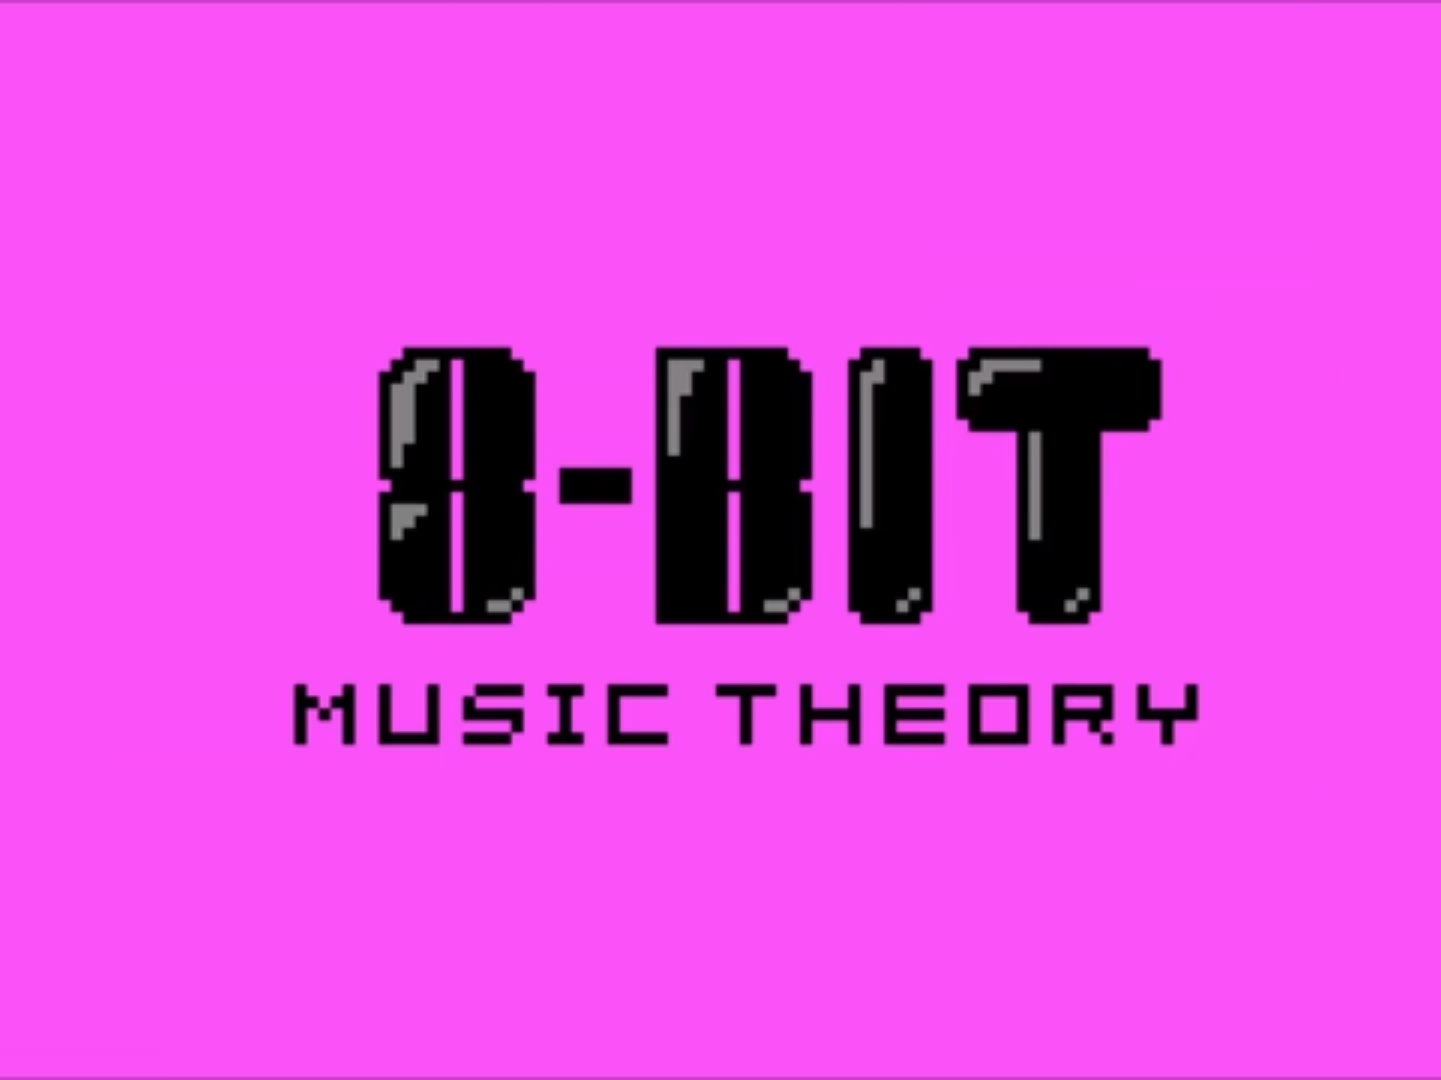 2019-08-15 09_35_30-8-bit Music Theory - YouTube.png